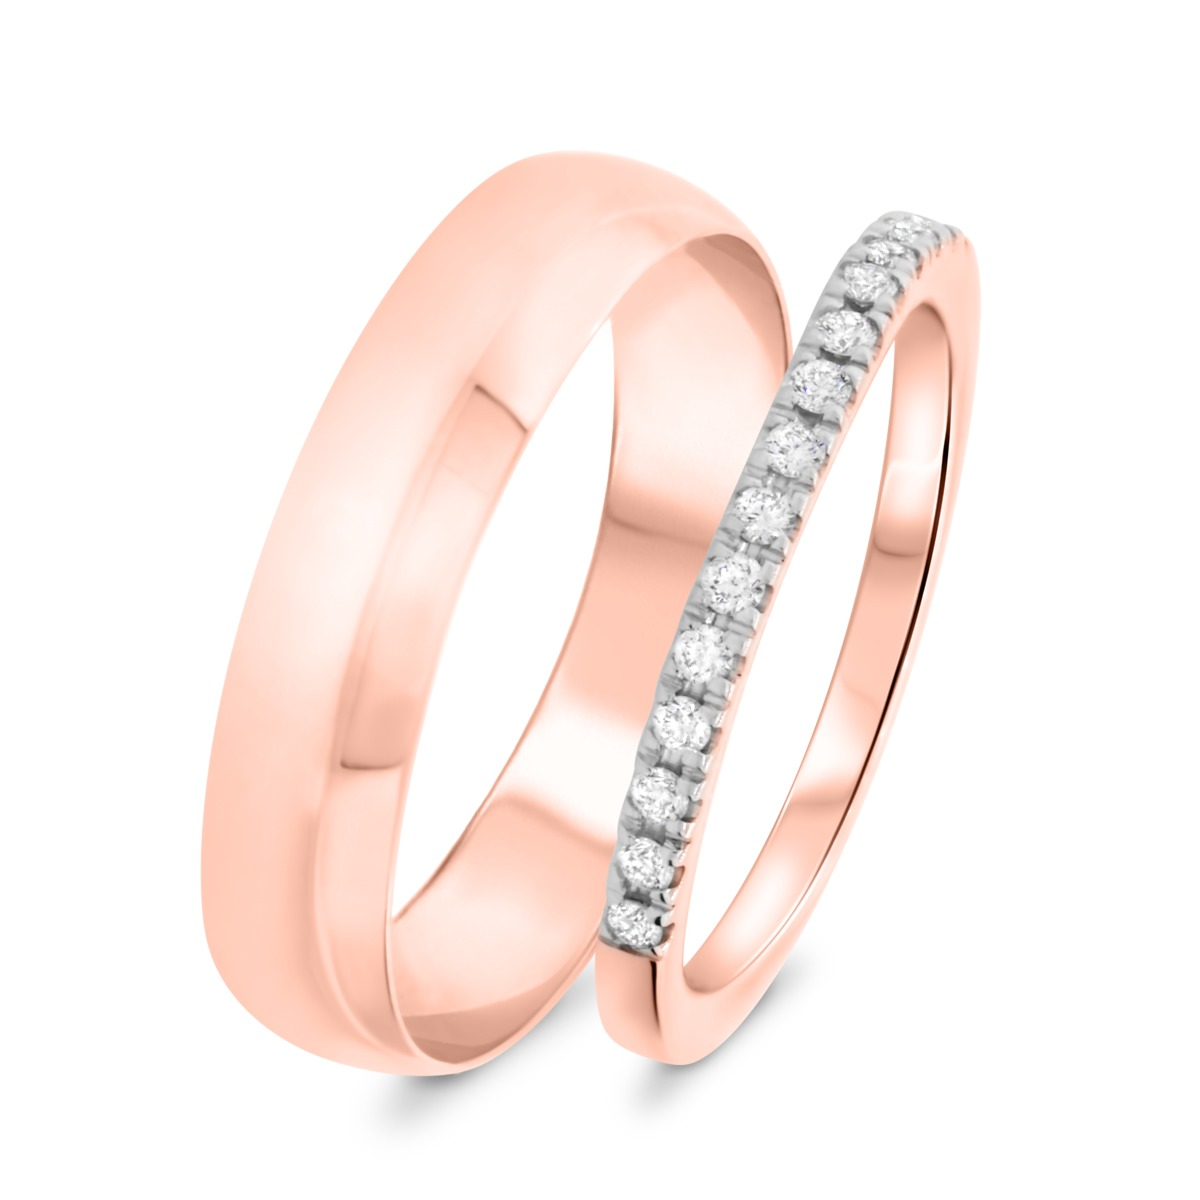 1/5 Carat T.W. Round Cut Diamond His and Hers Wedding Band Set 14K Rose Gold